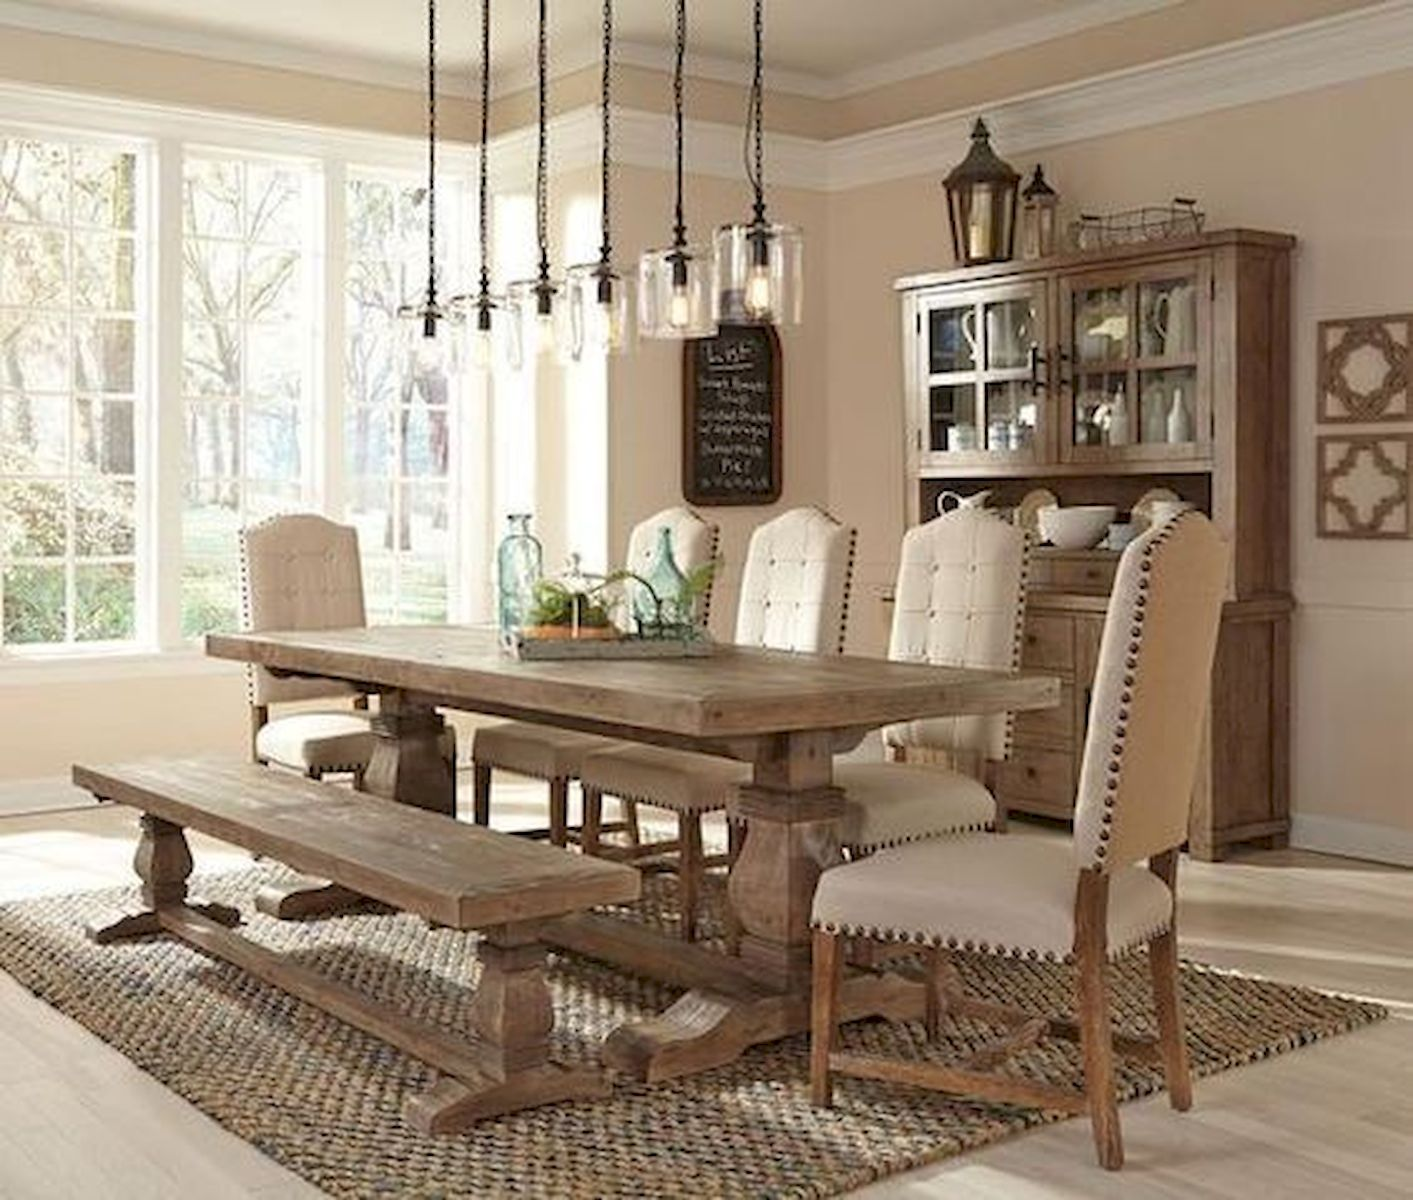 50 Nice DIY Furniture Projects for Dining Rooms Tables Design Ideas (48)